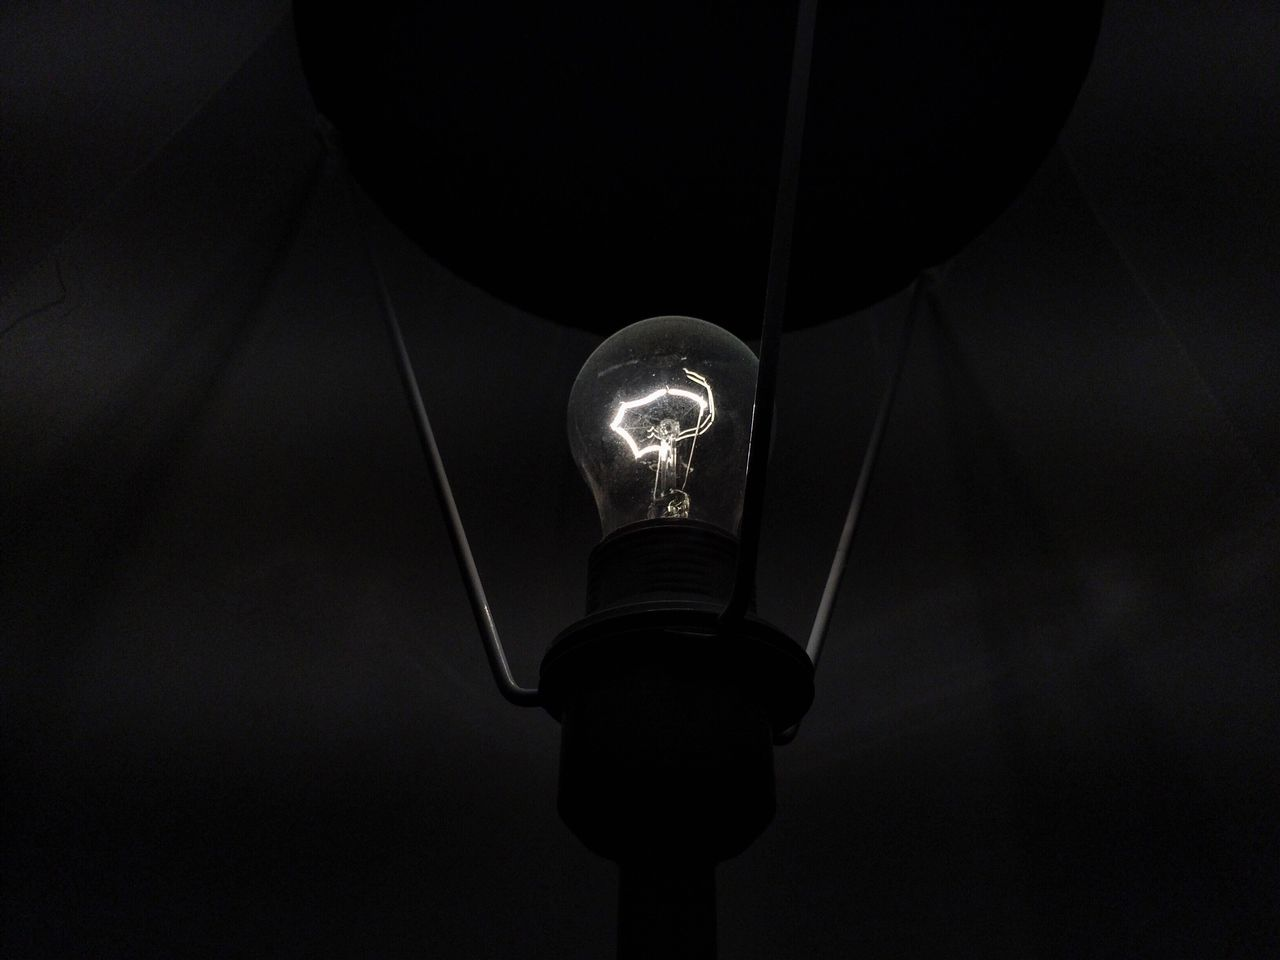 electricity, light bulb, lighting equipment, illuminated, bulb, technology, filament, no people, low angle view, fuel and power generation, close-up, hanging, studio shot, black background, indoors